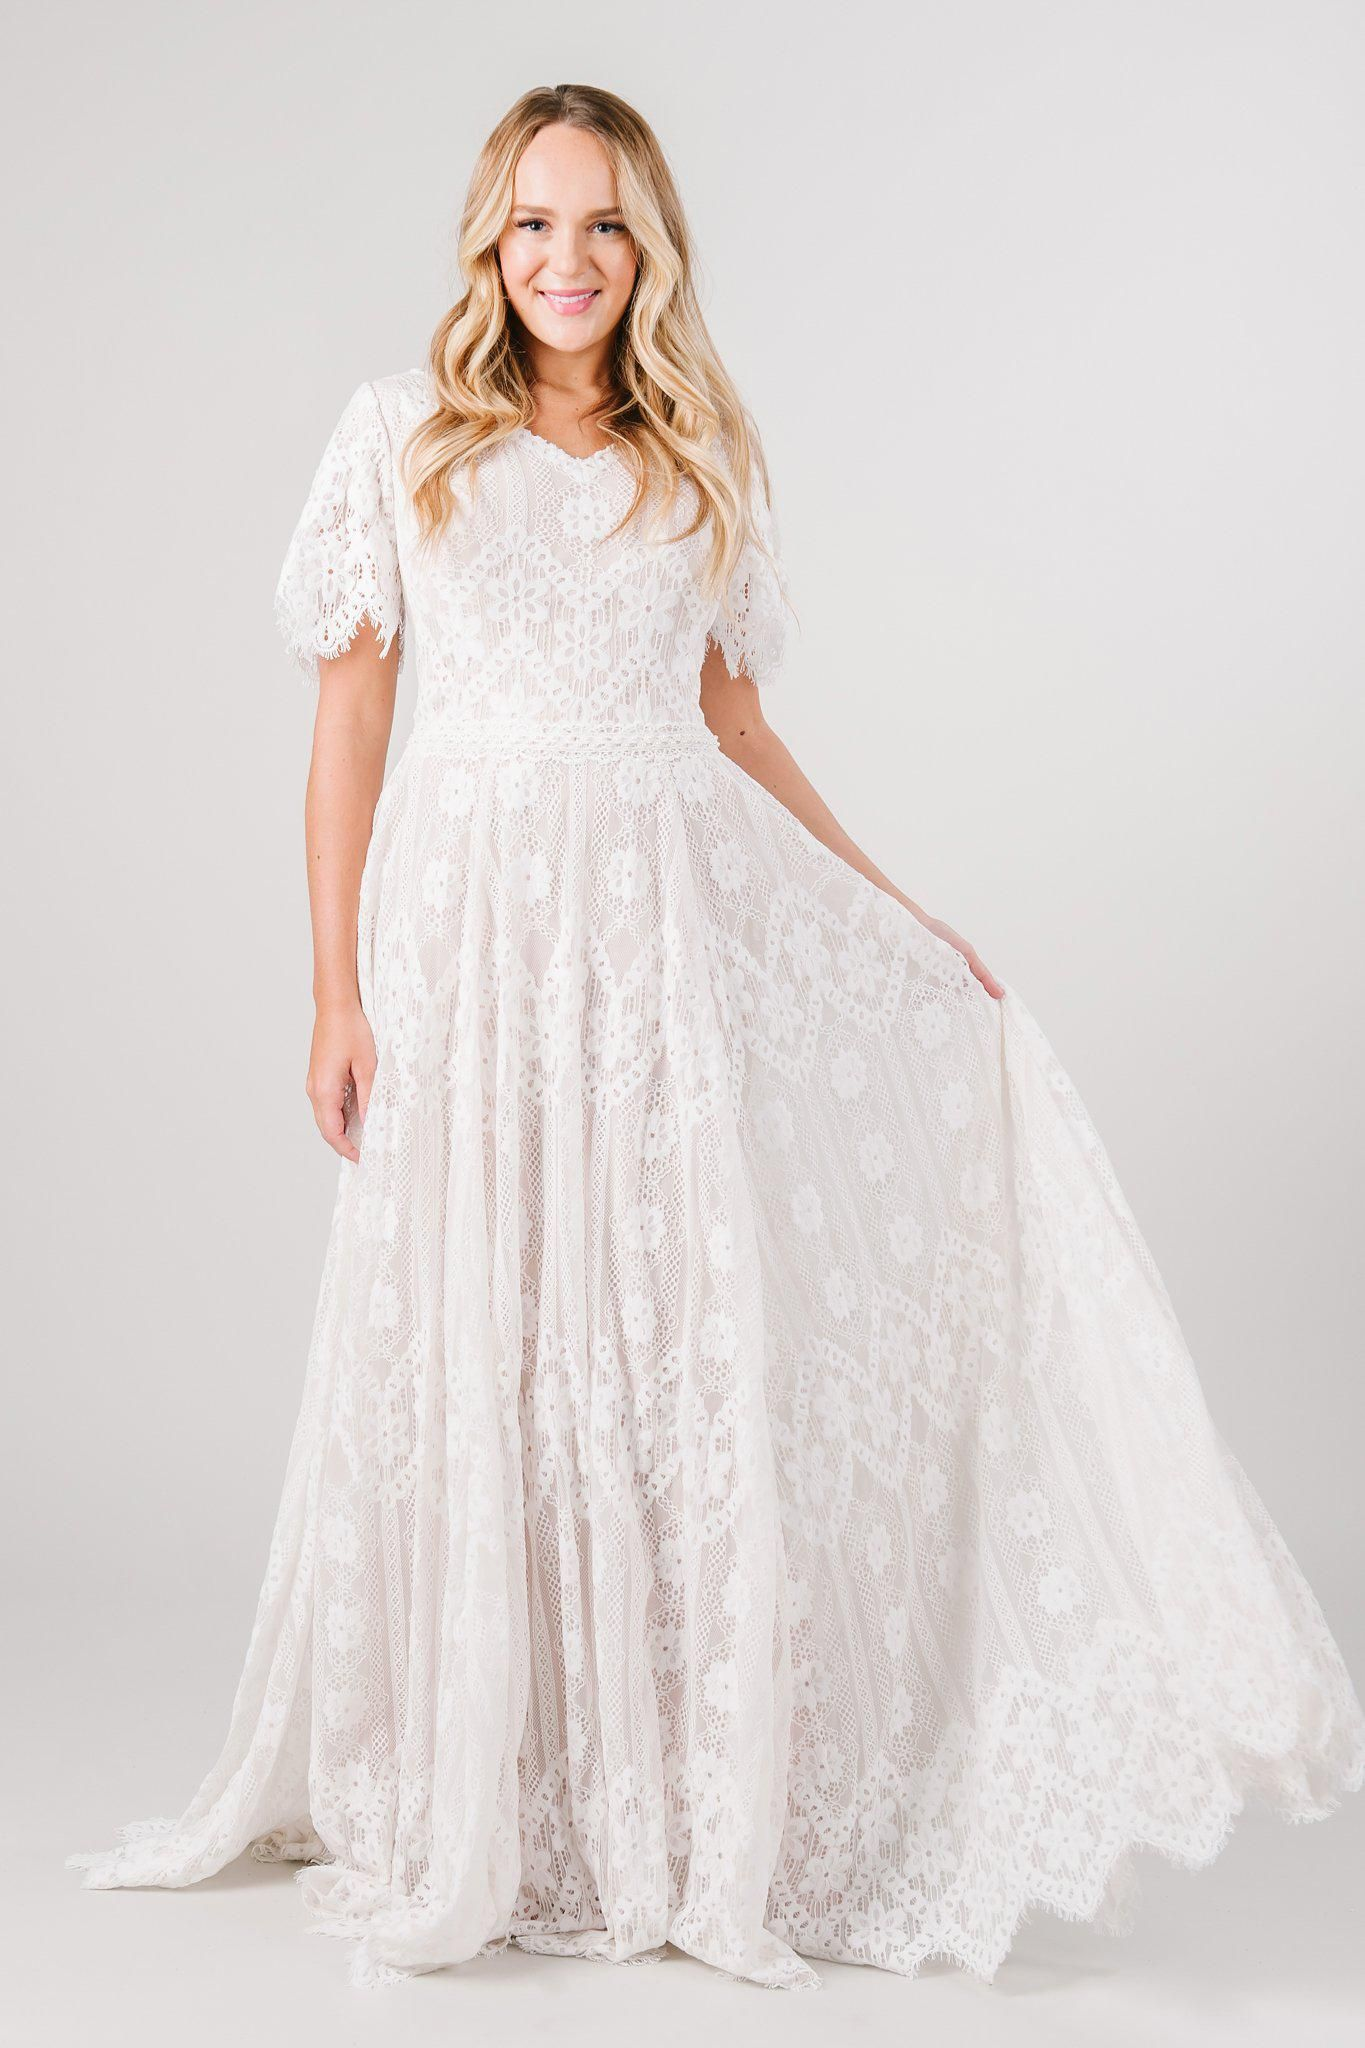 Calabria In Stock In 2021 Modest Wedding Dresses Wedding Dress Long Sleeve Wedding Dress Sleeves [ 2048 x 1365 Pixel ]